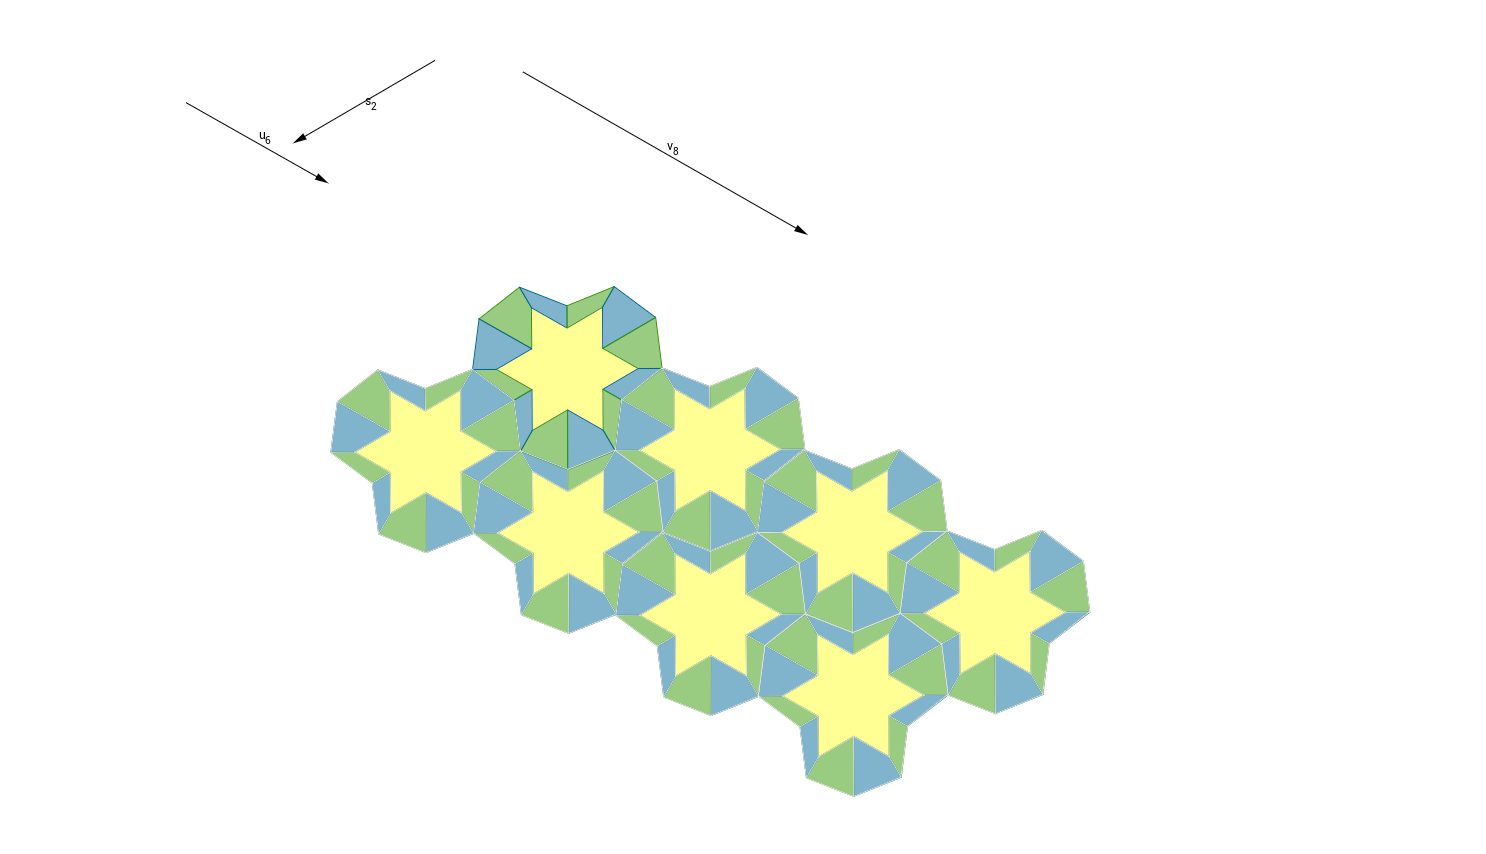 Step 8: Tessellating our Plane